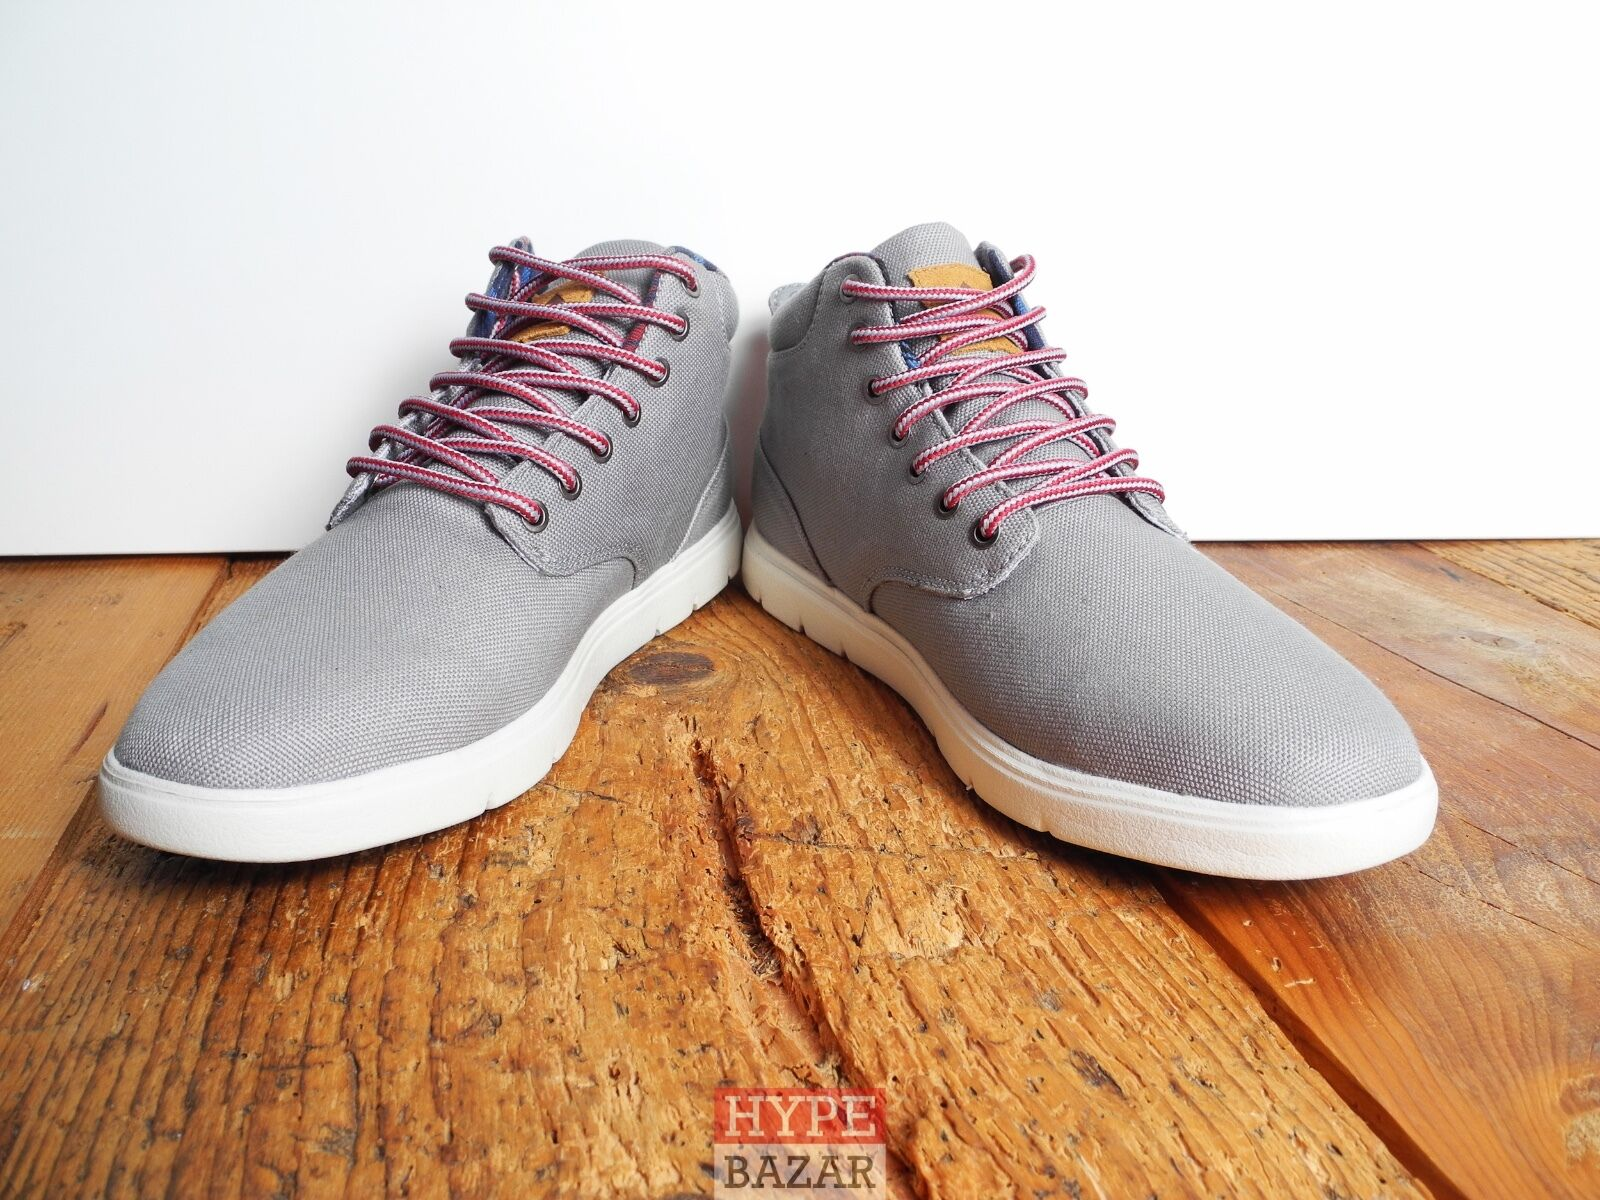 EMERICA WINO CRUISER LT HIGH SHOE NEU GREY GR:US SHOES 9 EUR 42 EMERICA SHOES GR:US aec5c5